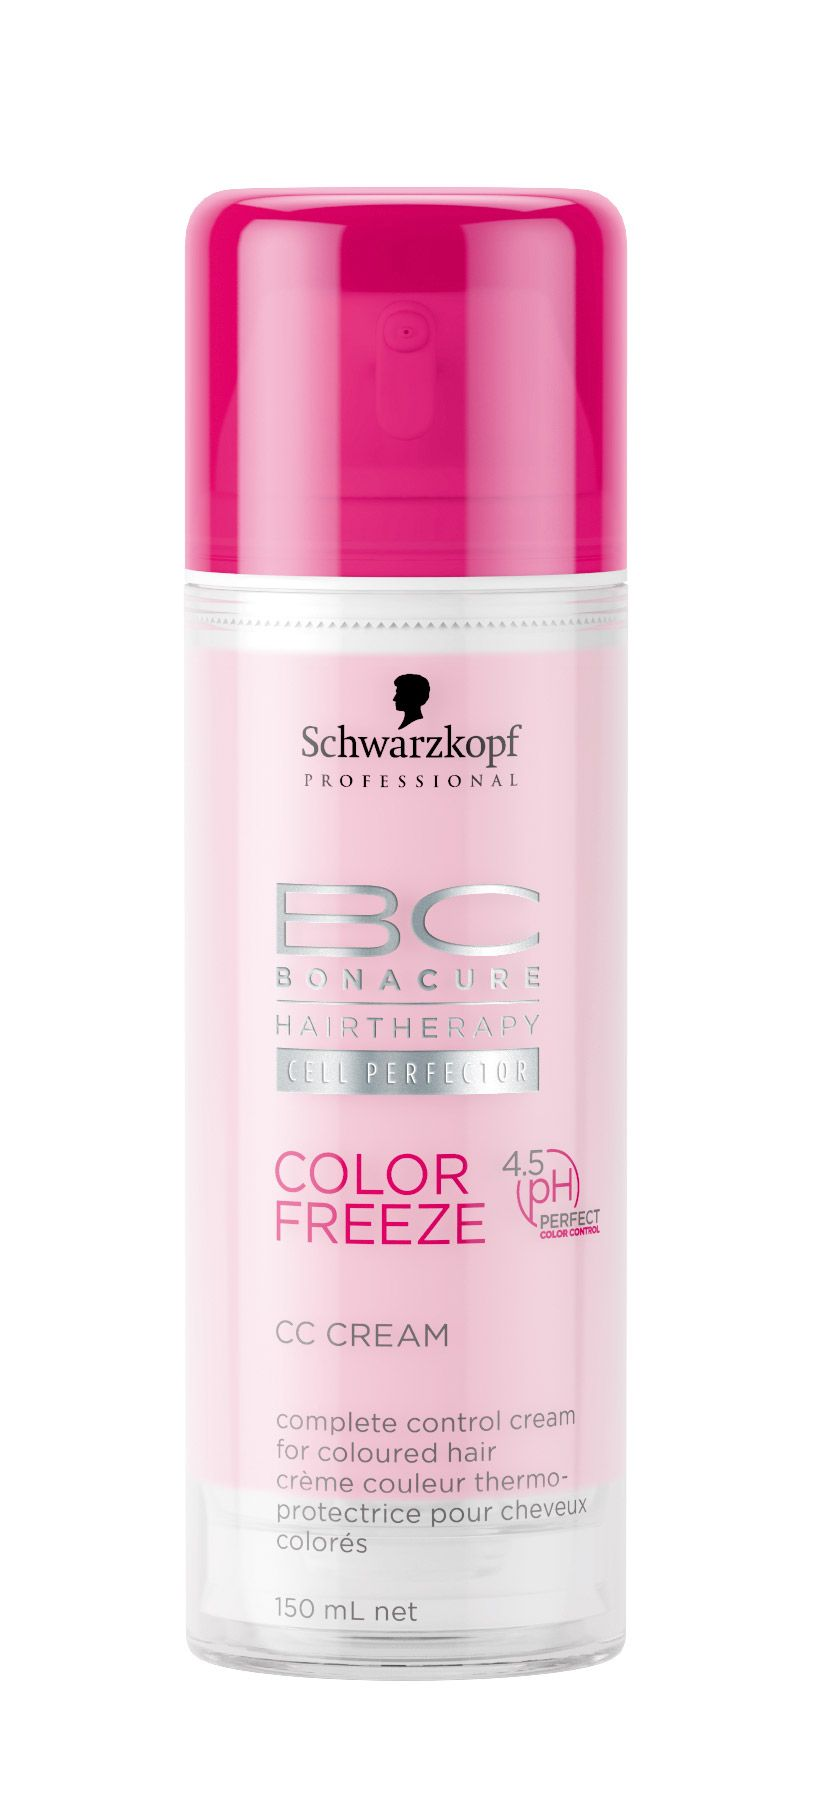 Schwarzkopf color ultimate online kaufen - Schwarzkopf Professional Bc Hairtherapy Cell Perfector Color Freeze 4 5 Ph Perfect Color Control Cc